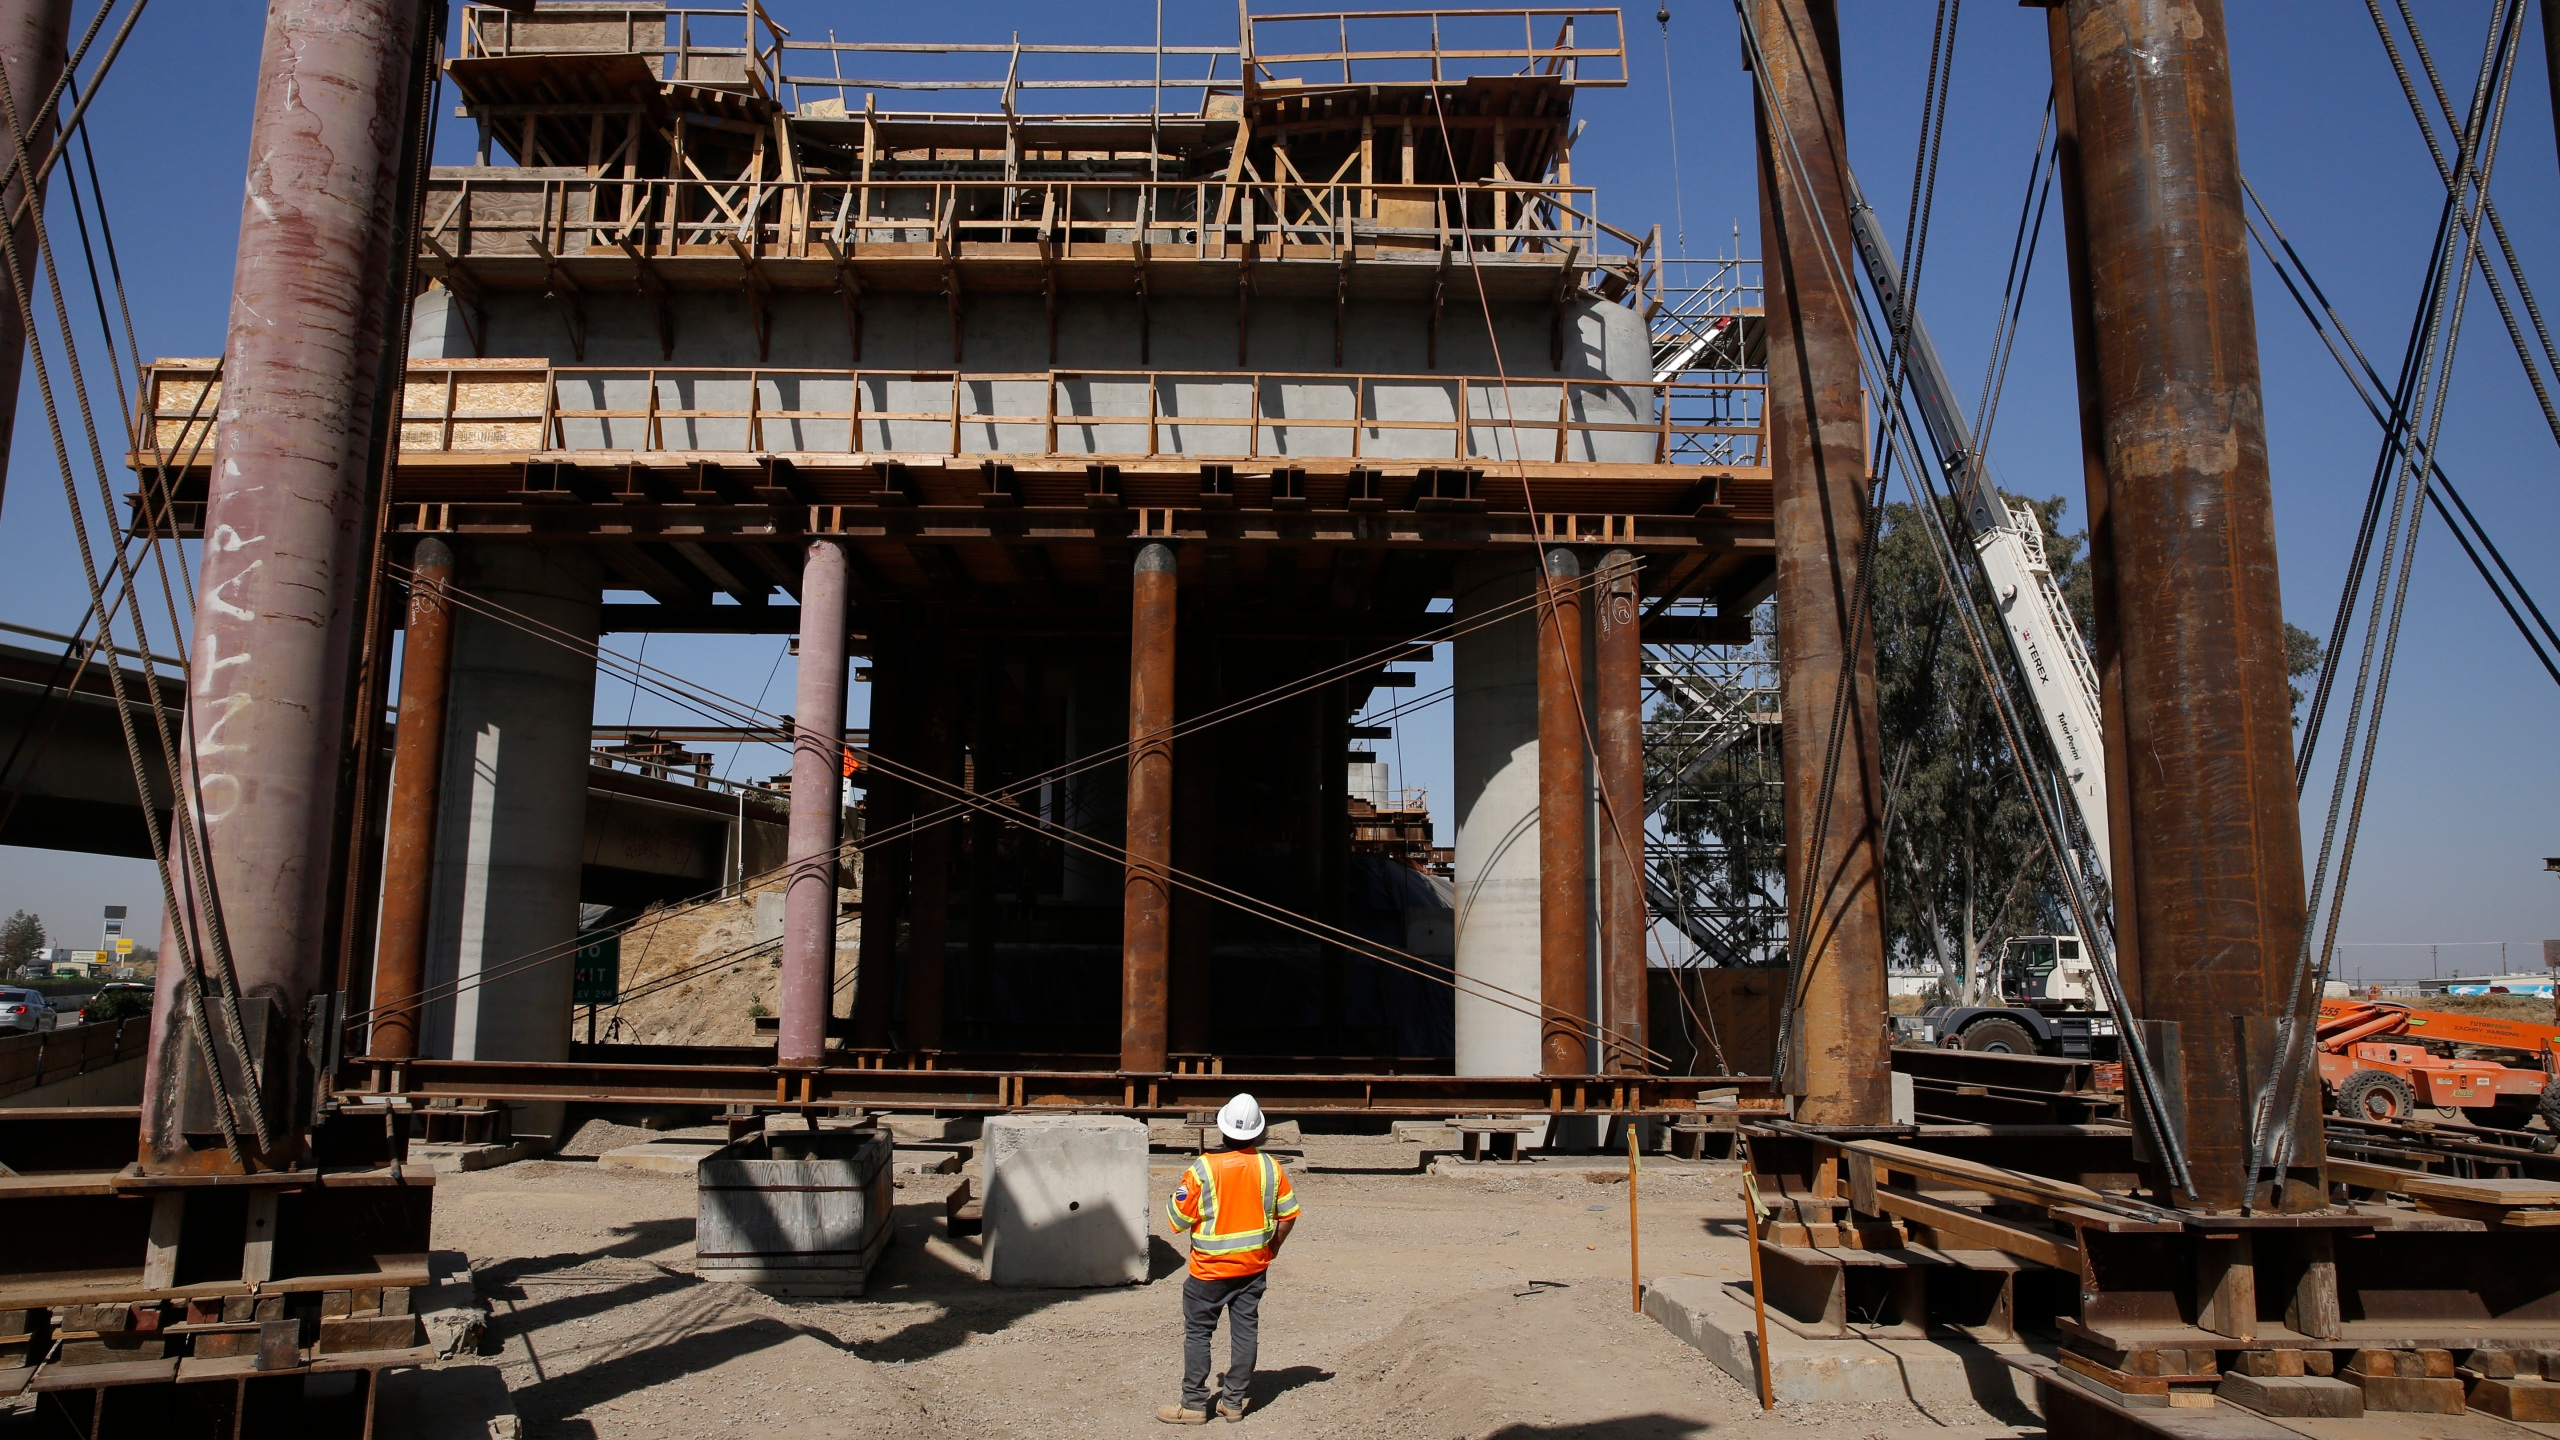 The high-speed rail viaduct that will cross over Highway 99 is seen under construction in Fresno on Oct. 9, 2019. (Rich Pedroncelli / Associated Press)